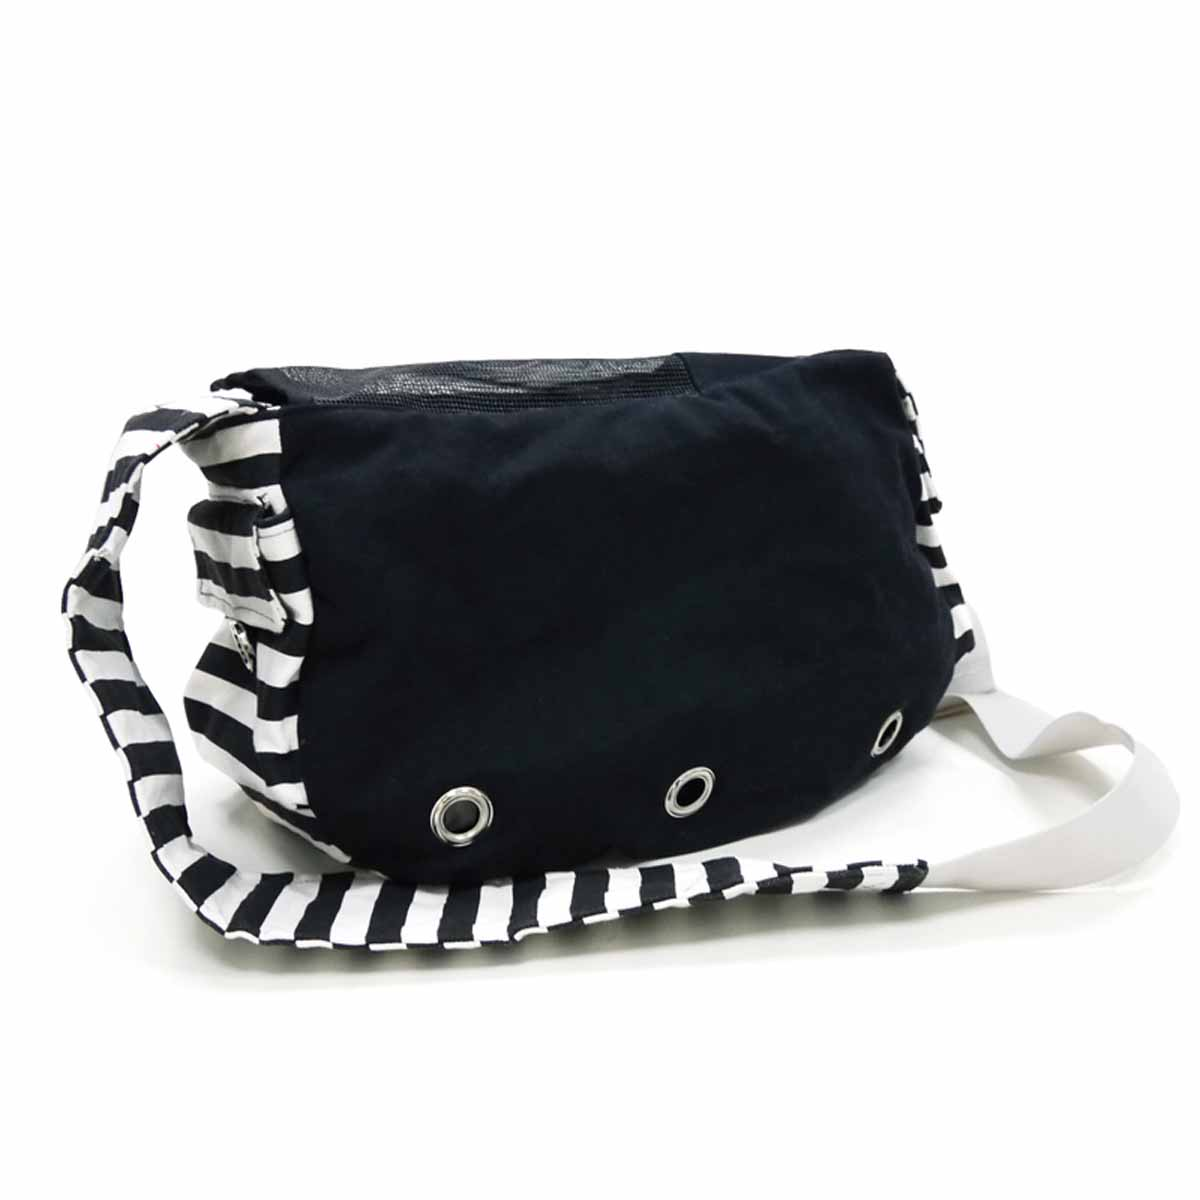 Soft Sling Bag Dog Carrier by Dogo - Black